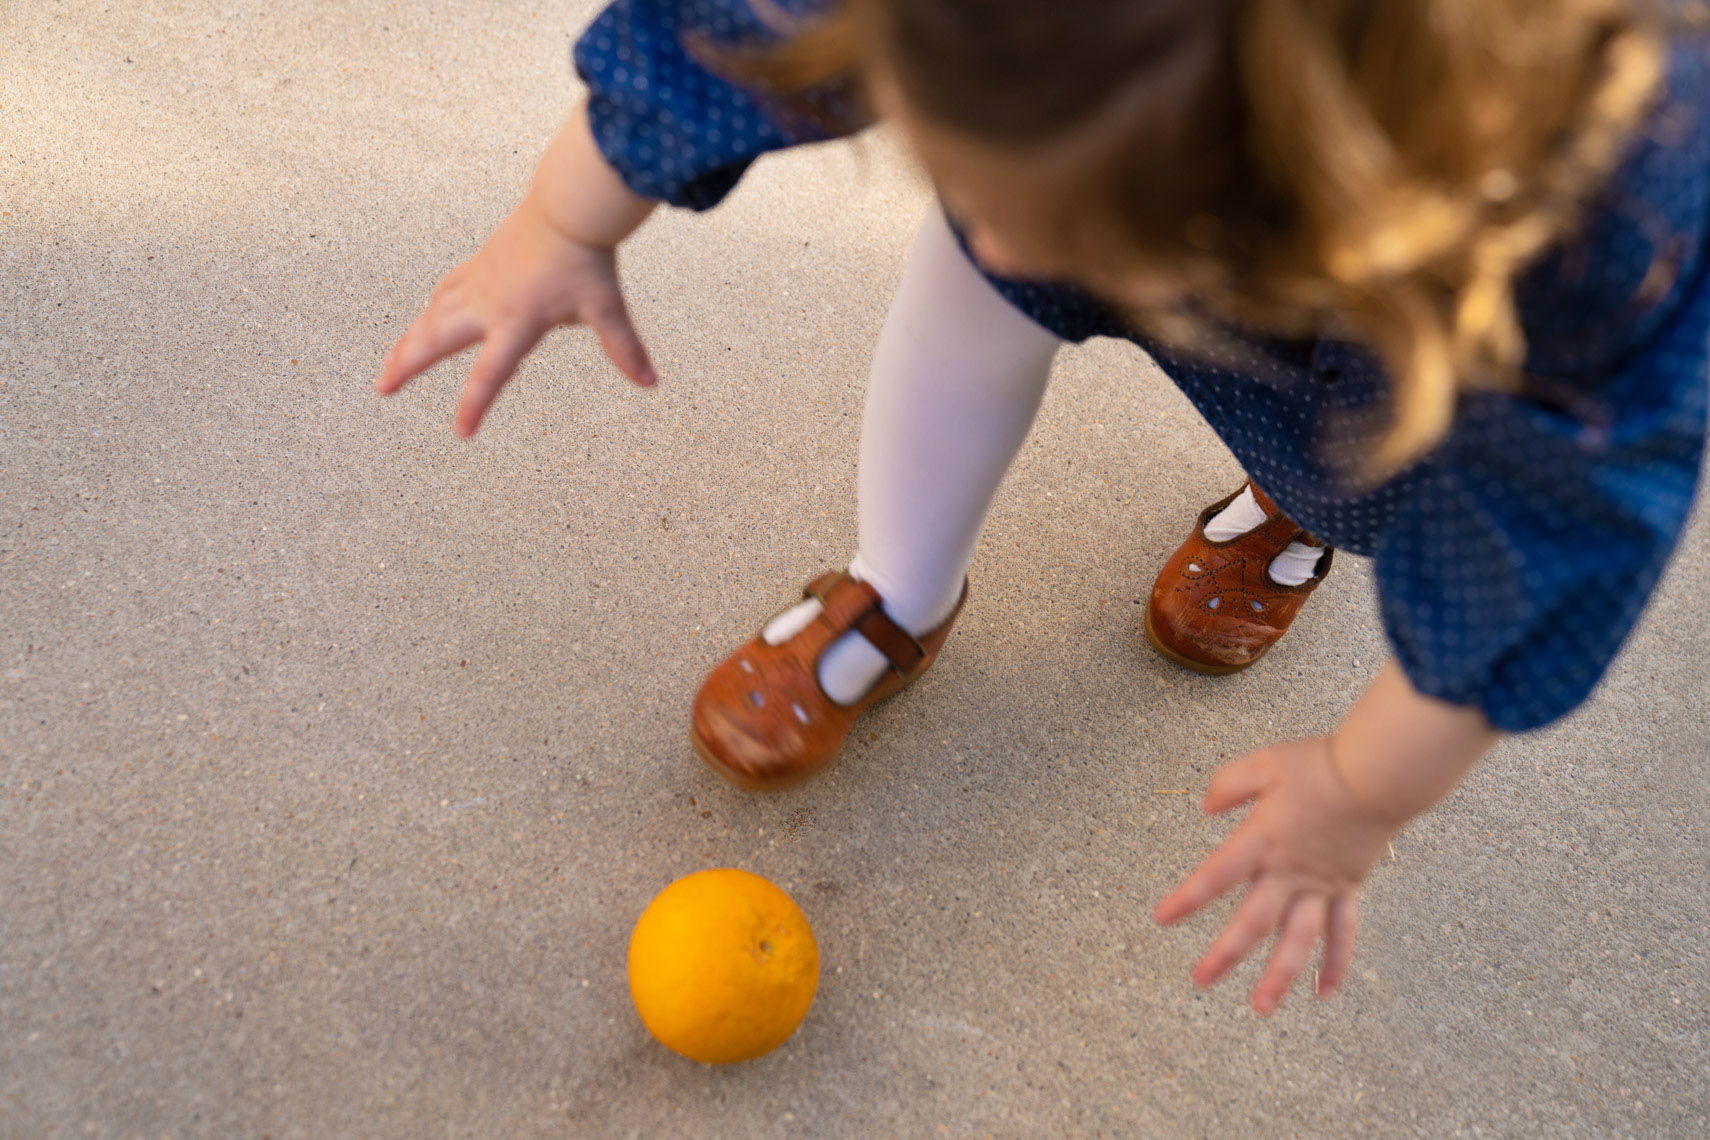 Child catching orange | Kids Lifestyle Photographer